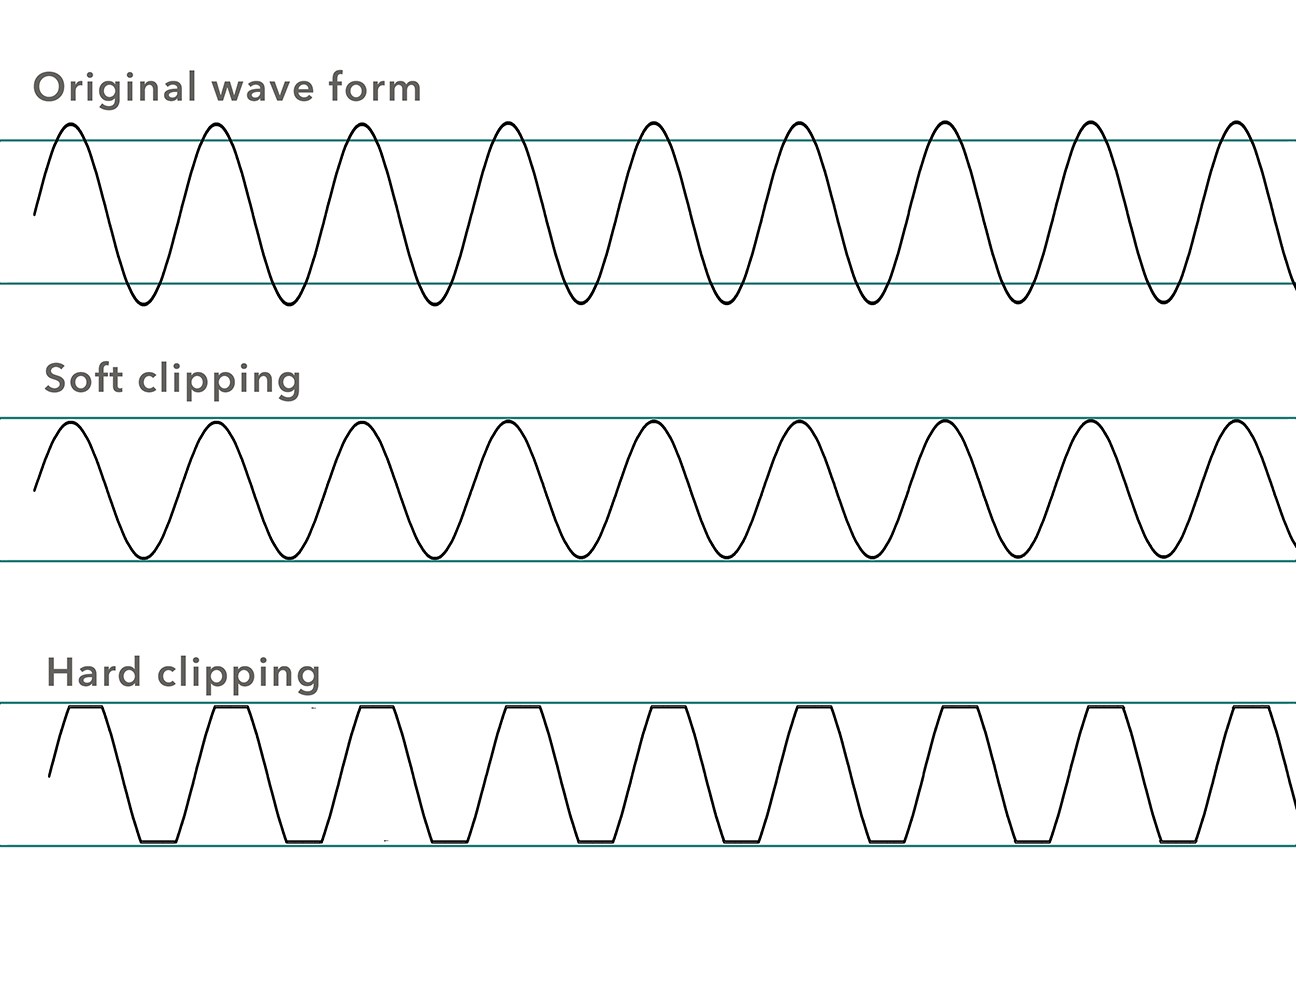 Illustration of soft vs hard clipping of a sound wave.